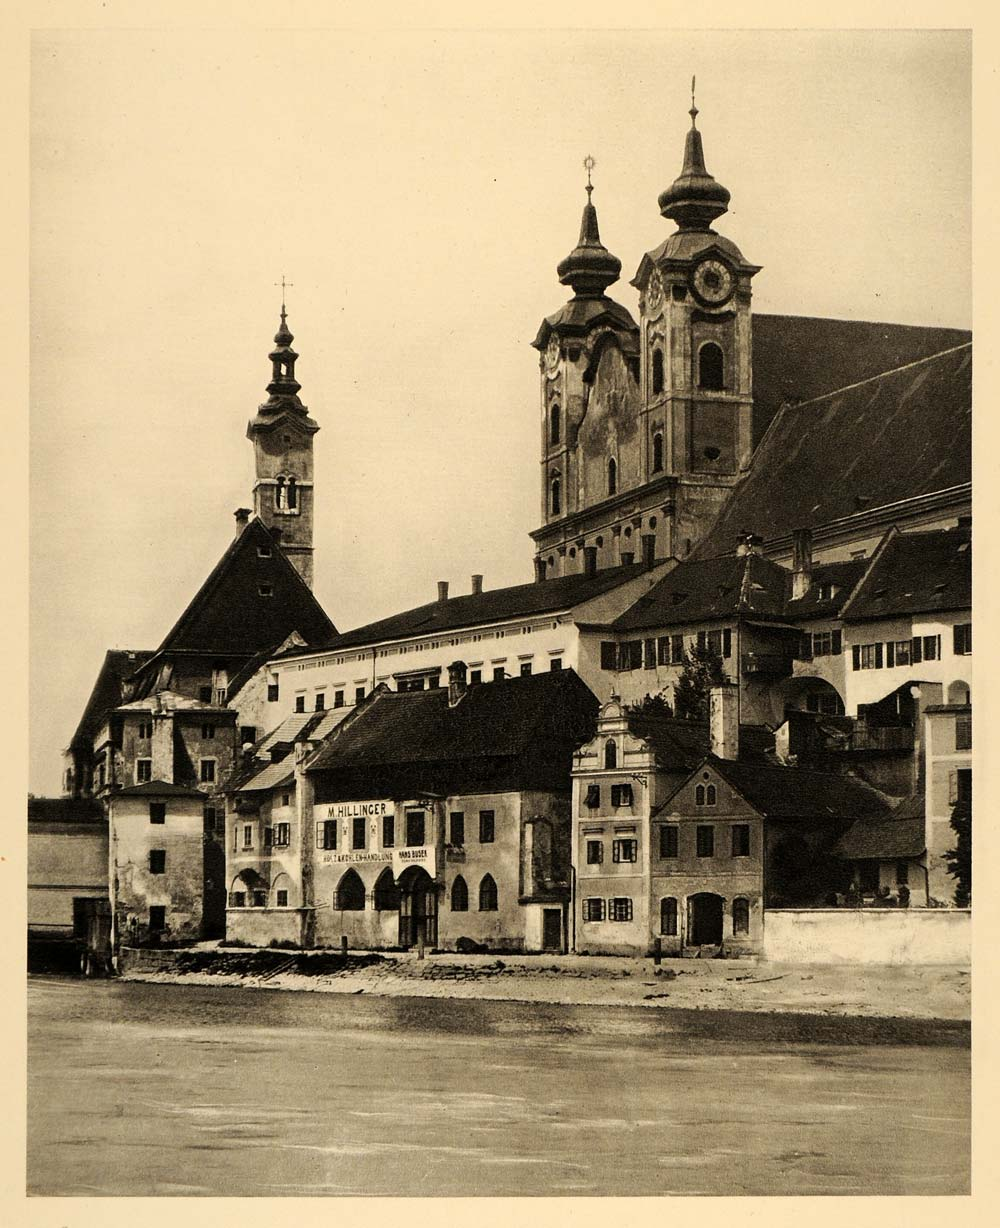 1934 Steyr Enns Austria Baroque St Michael's Church - ORIGINAL PHOTOGRAVURE GER4